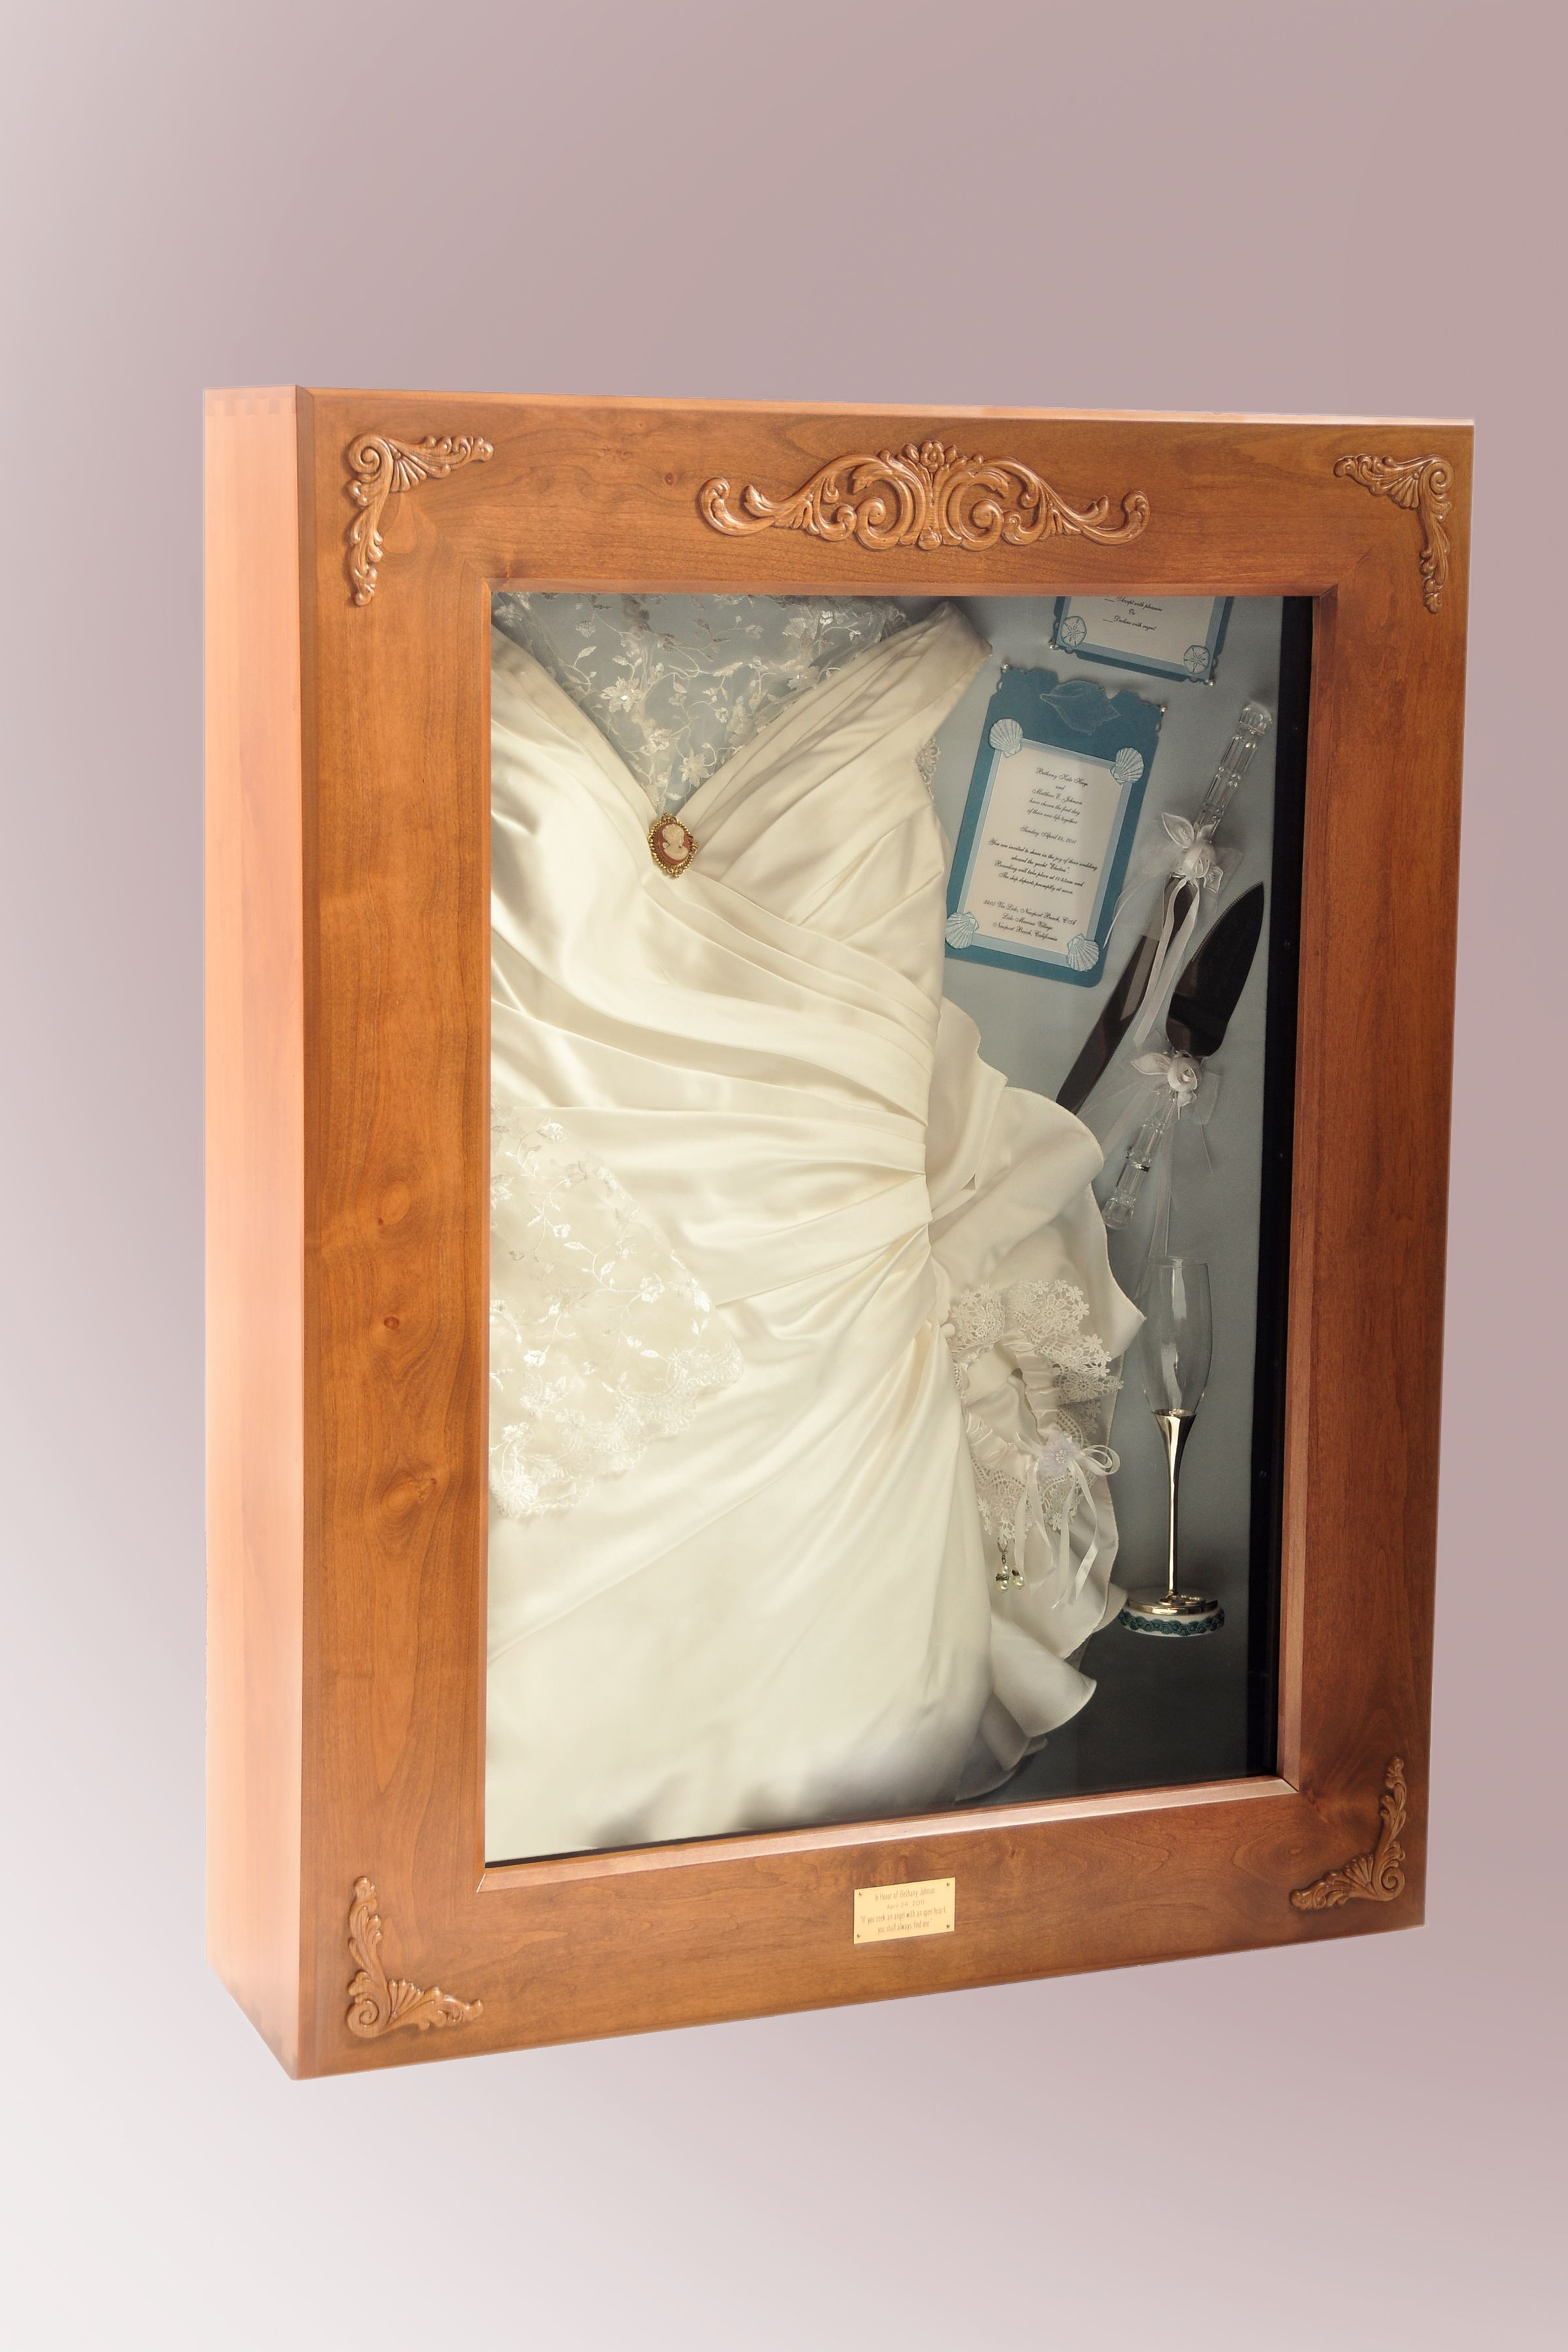 See Heirloom Shadow Box Co On Internet For Details Of Our Lighted Shadow Boxes To Display Yo Wedding Dress Display Wedding Shadow Box Wedding Dress Shadow Box